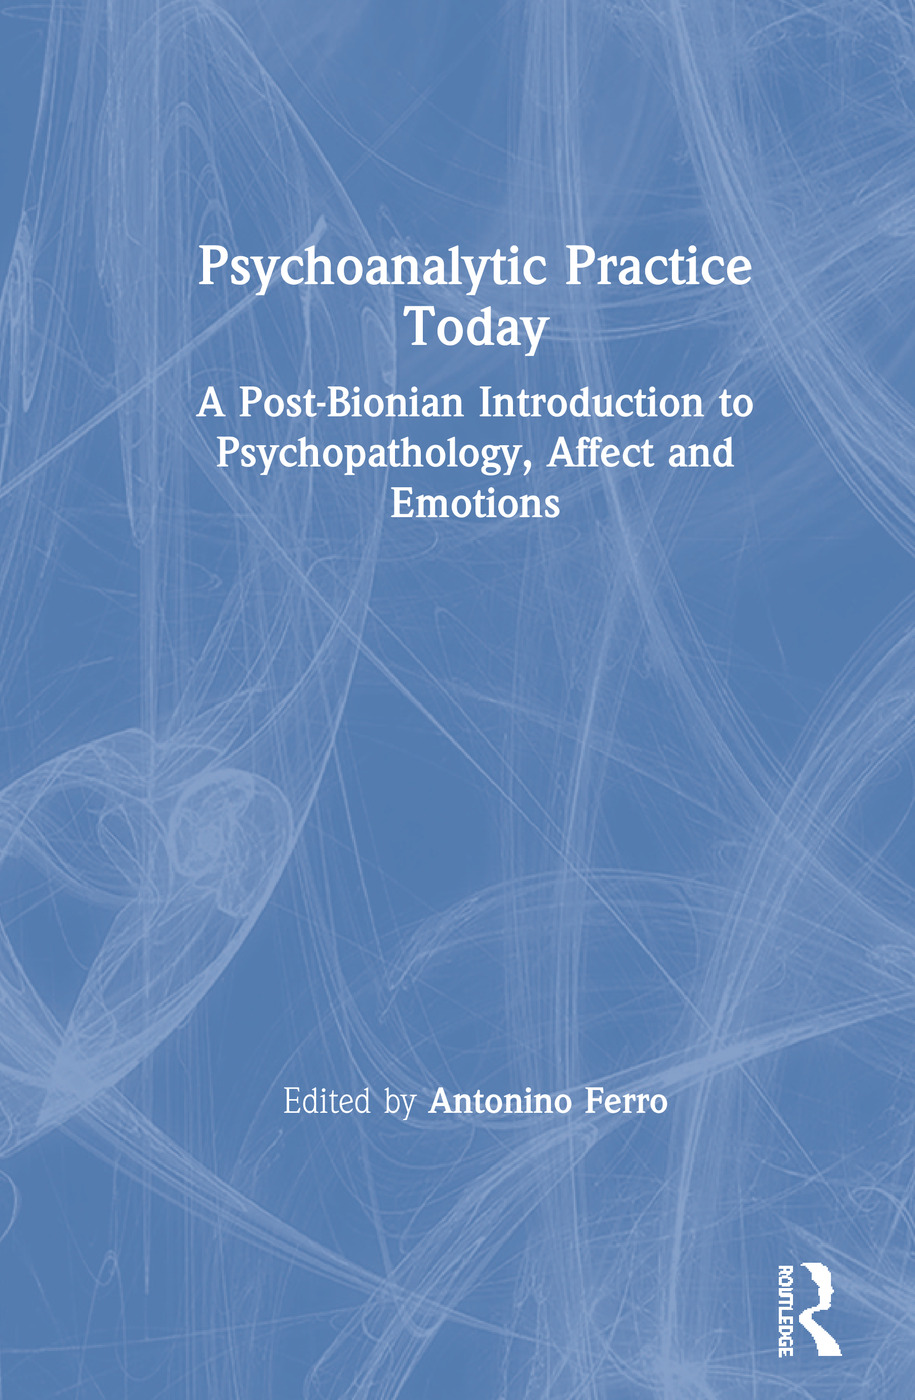 Psychoanalytic Practice Today: A Post-Bionian Introduction to Psychopathology, Affect and Emotions book cover